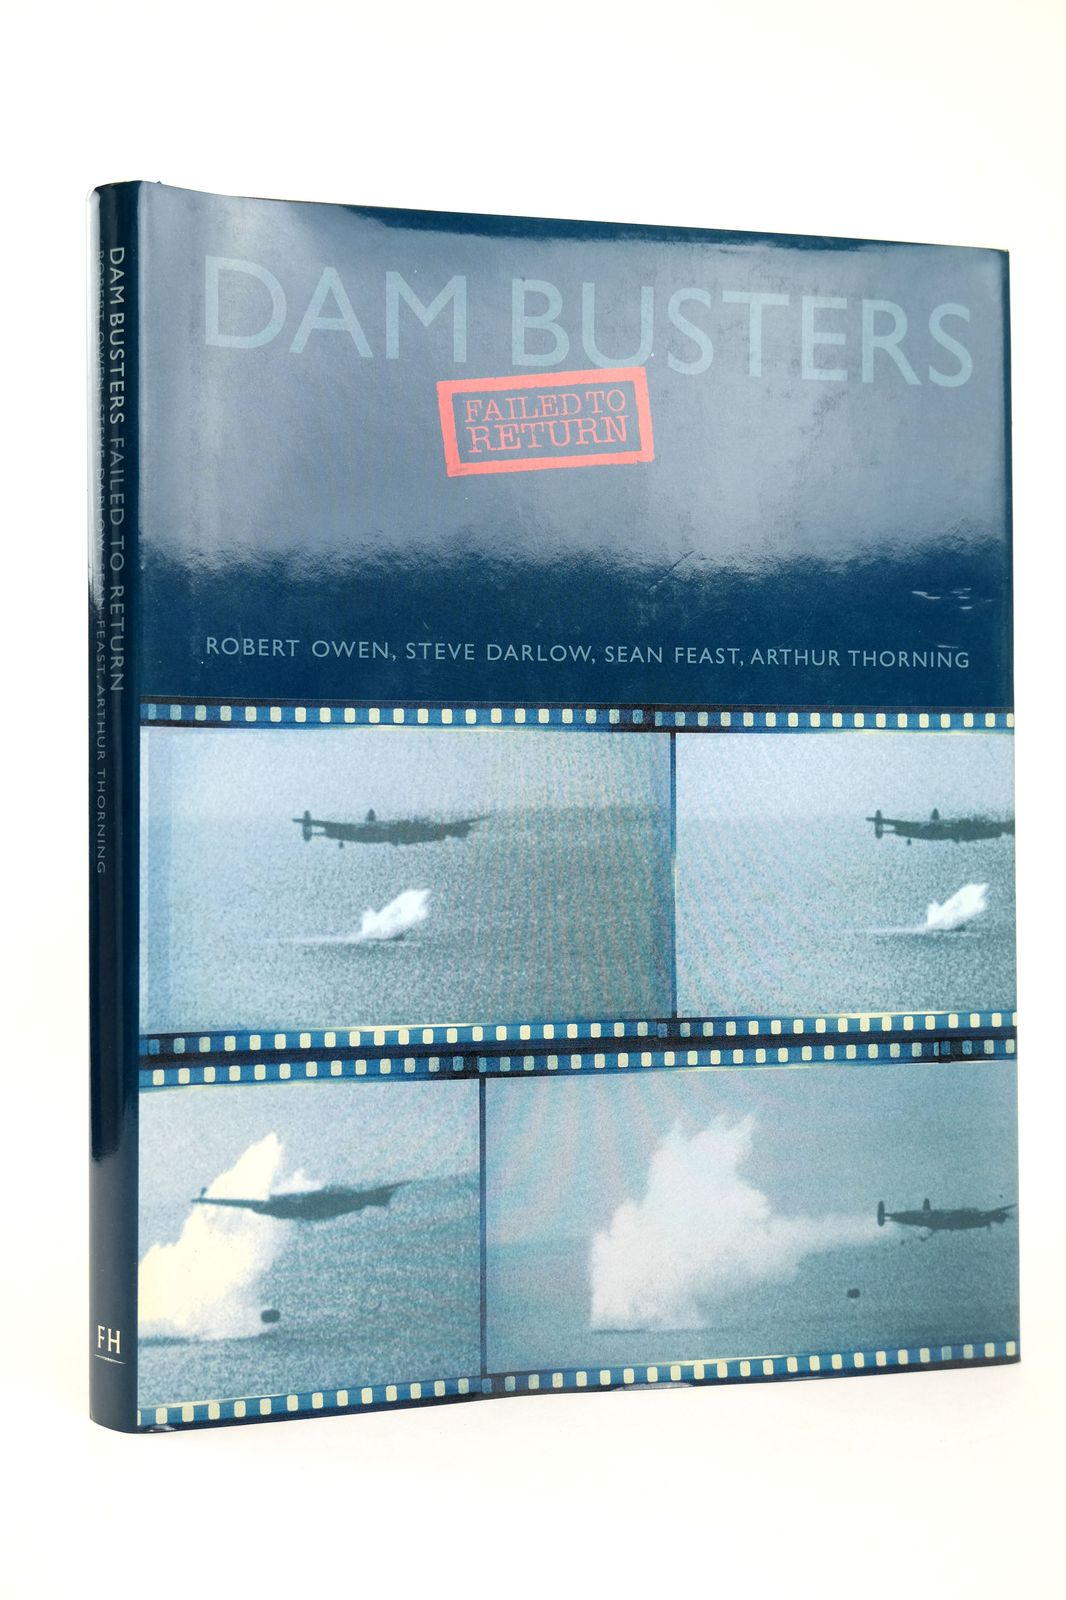 Photo of DAM BUSTERS FAILED TO RETURN written by Owen, Robert Darlow, Steve Feast, Sean Thorning, Arthur published by Fighting High Ltd (STOCK CODE: 1818680)  for sale by Stella & Rose's Books